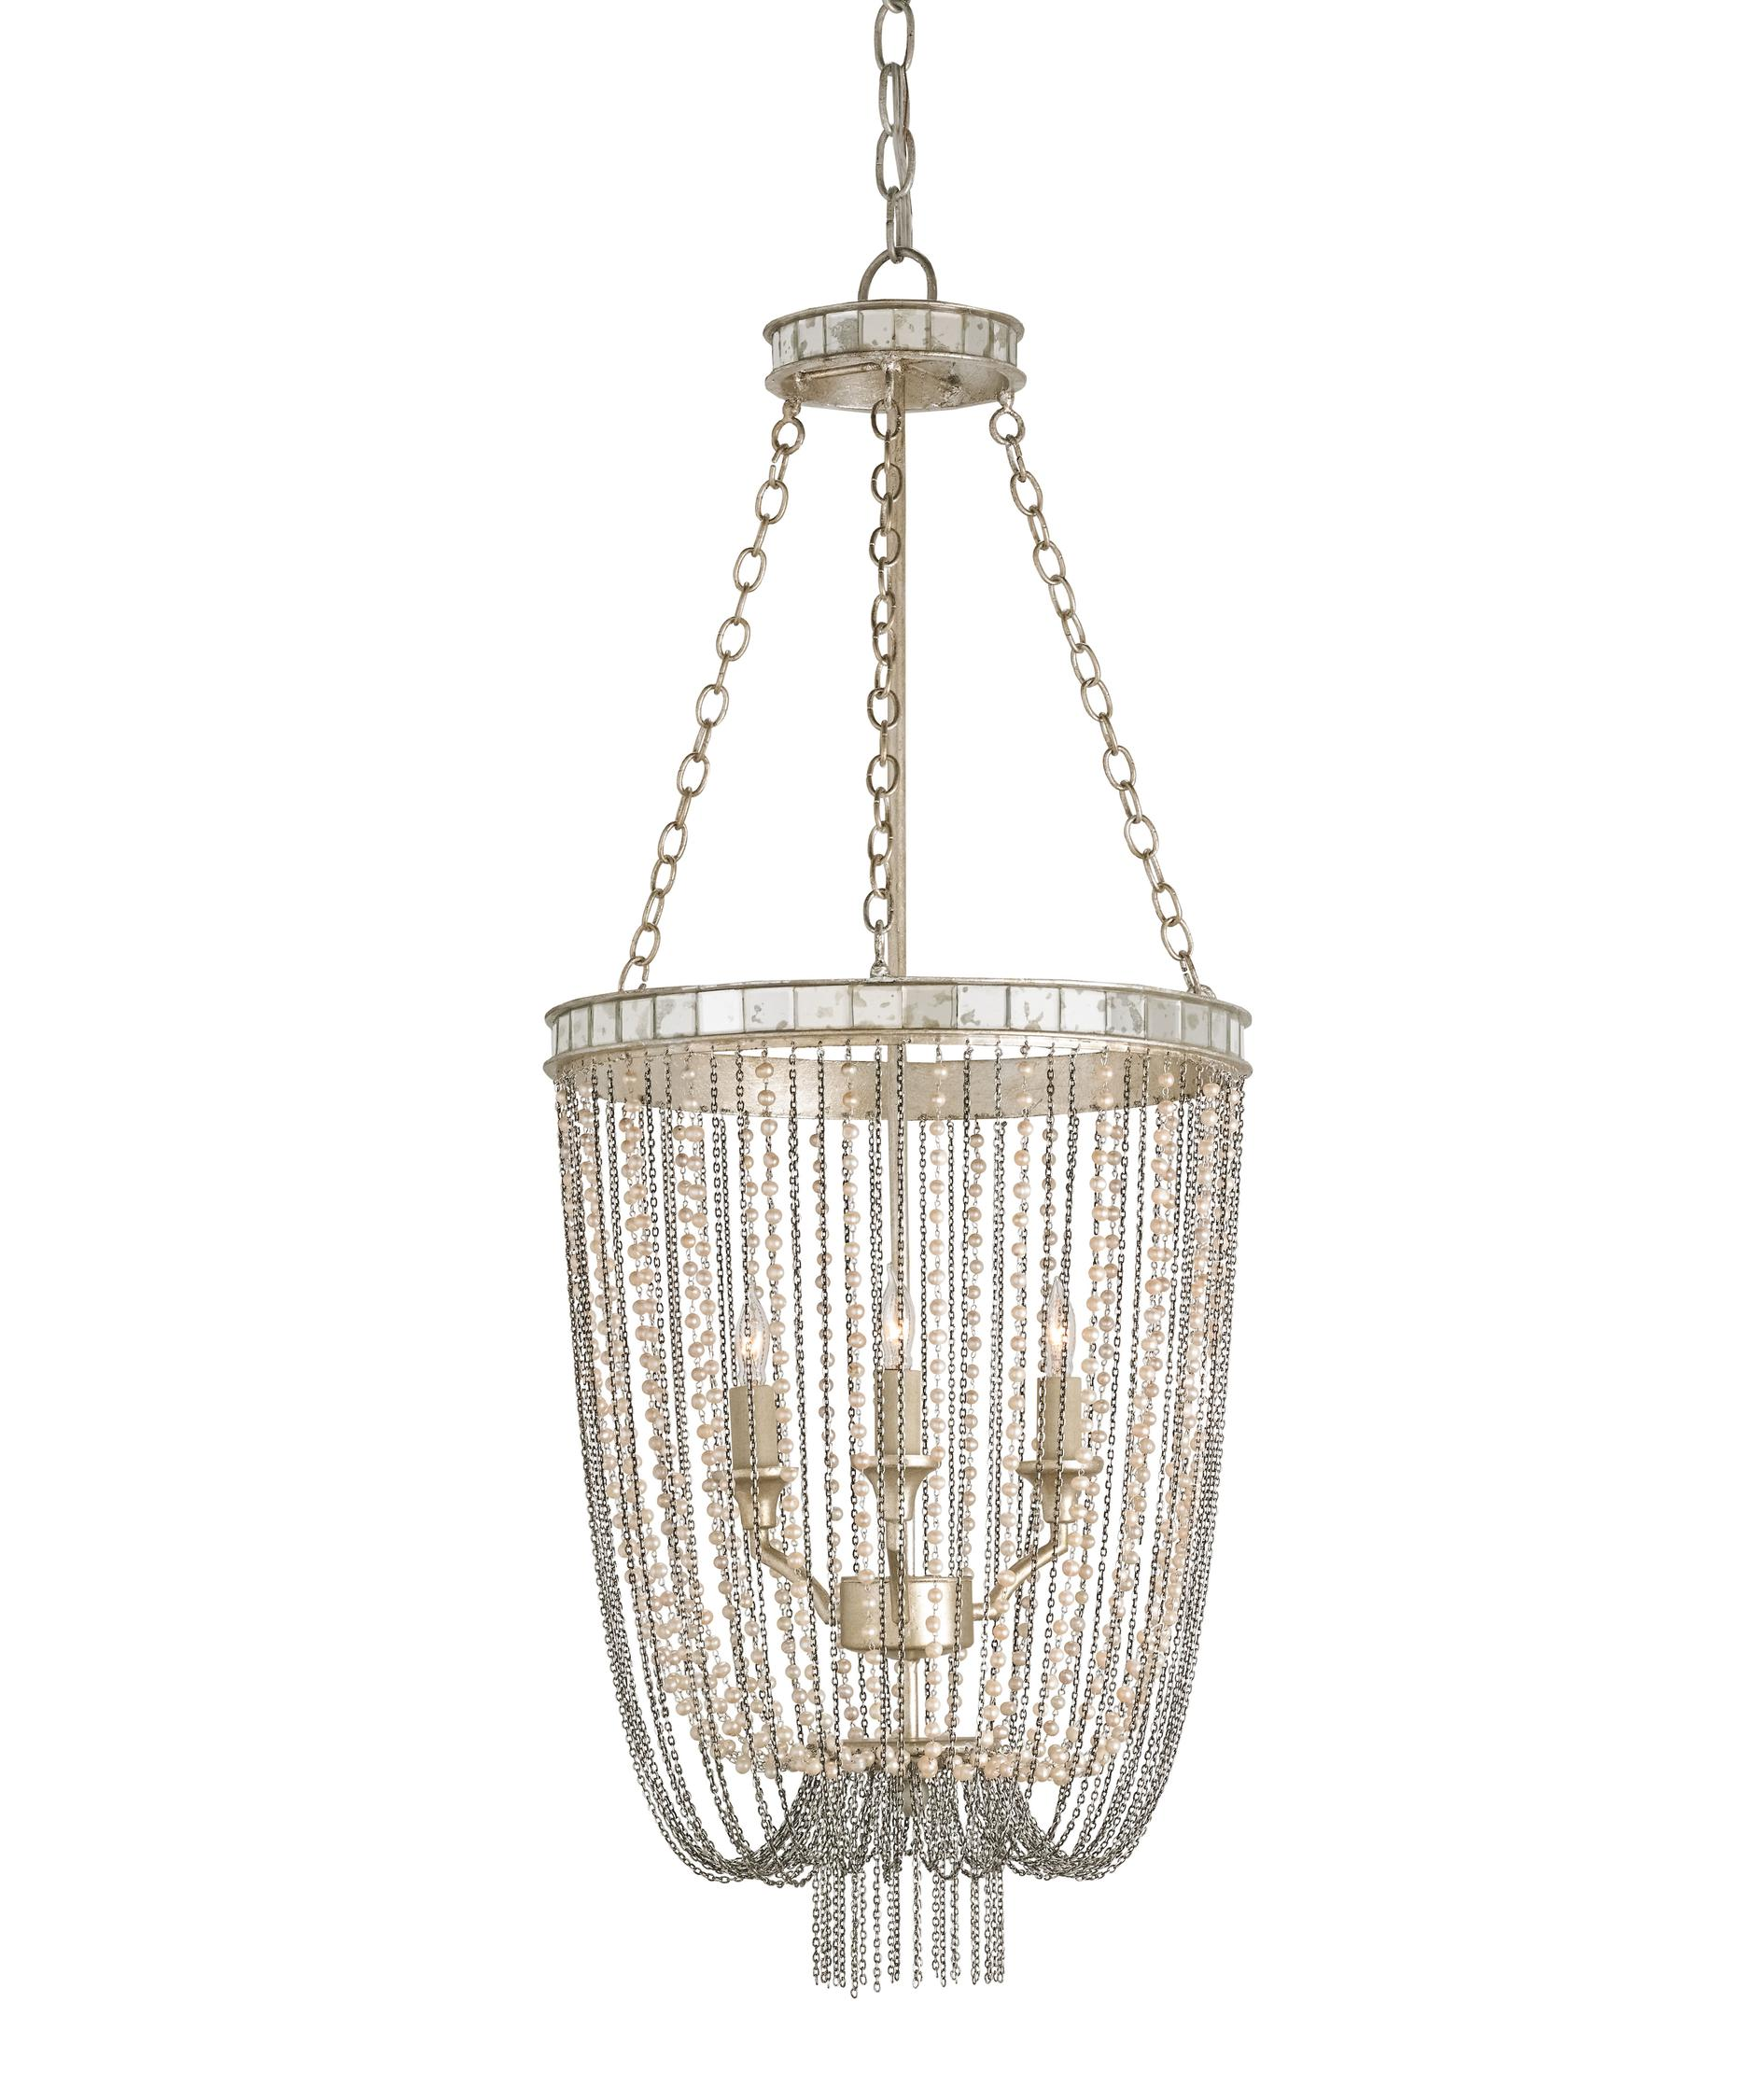 Currey and Company Socialite 14 Inch Wide 3 Light Mini Chandelier – Currey and Company Lighting Chandeliers